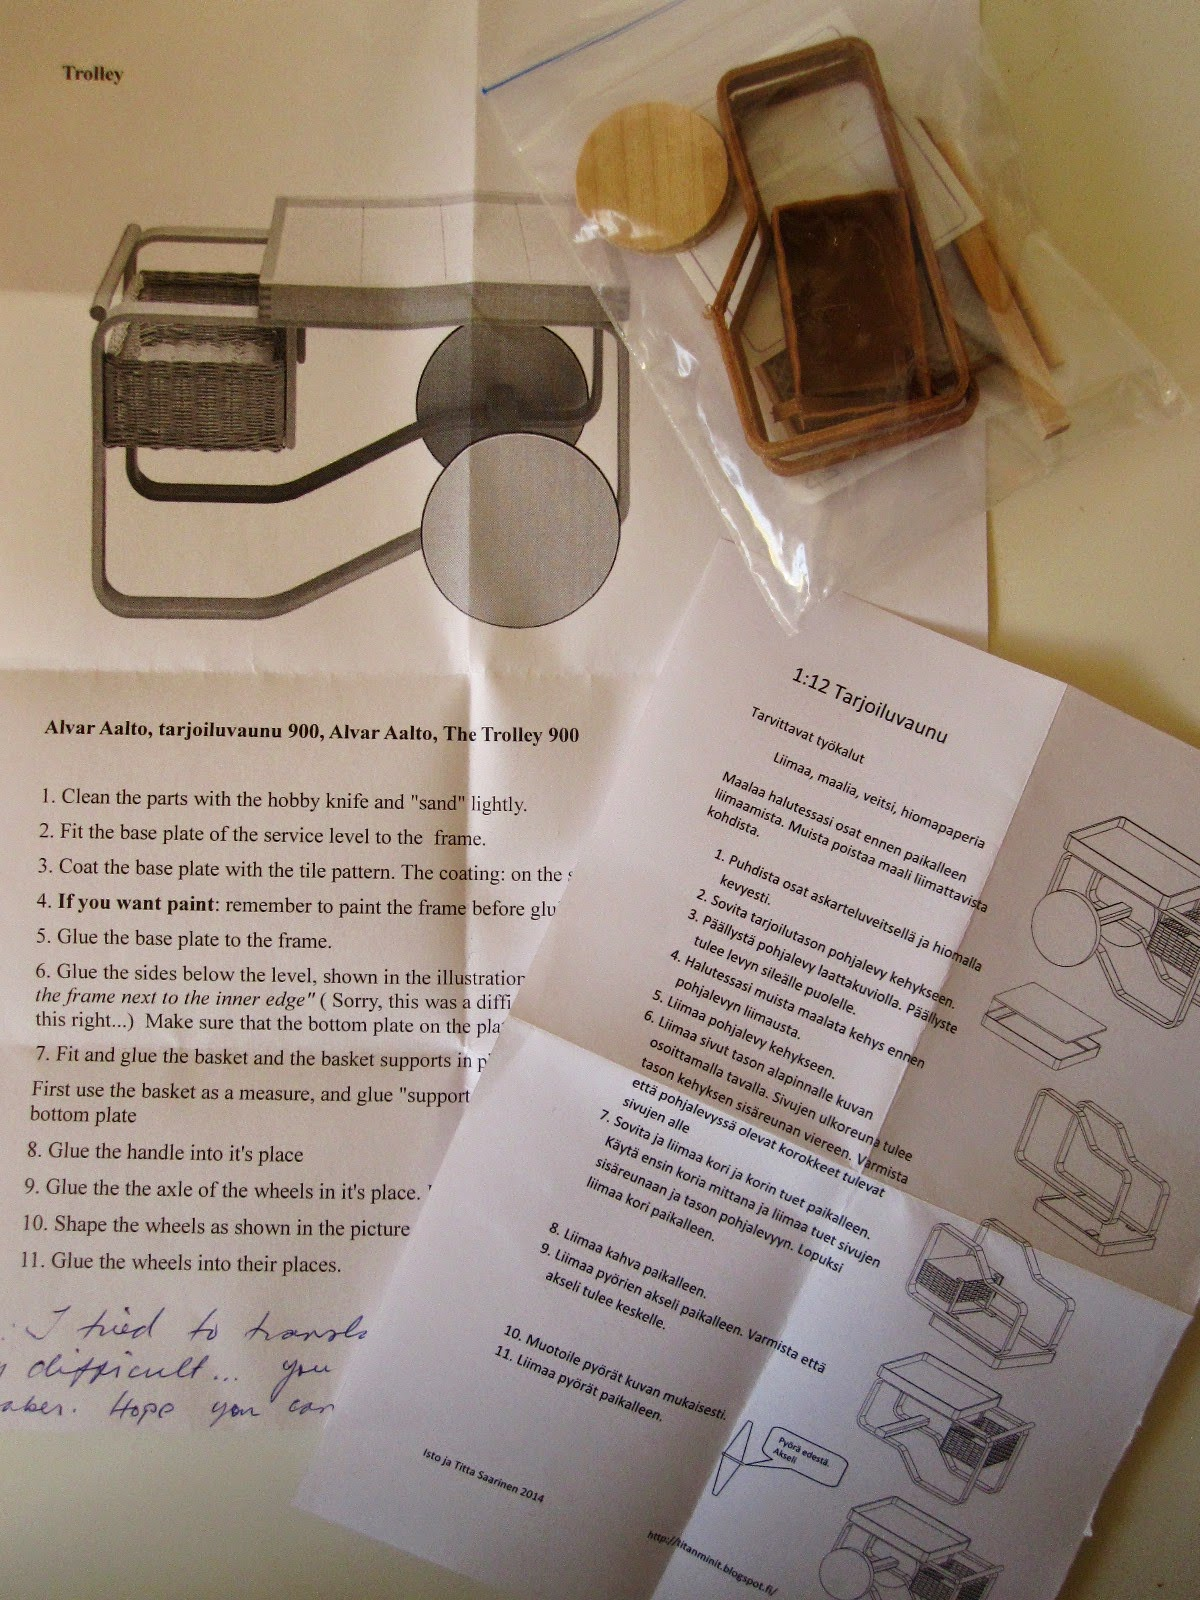 Pieces for a kitset miniature Aalto 900 trolley, plus instructions sheets in Finnish and English.